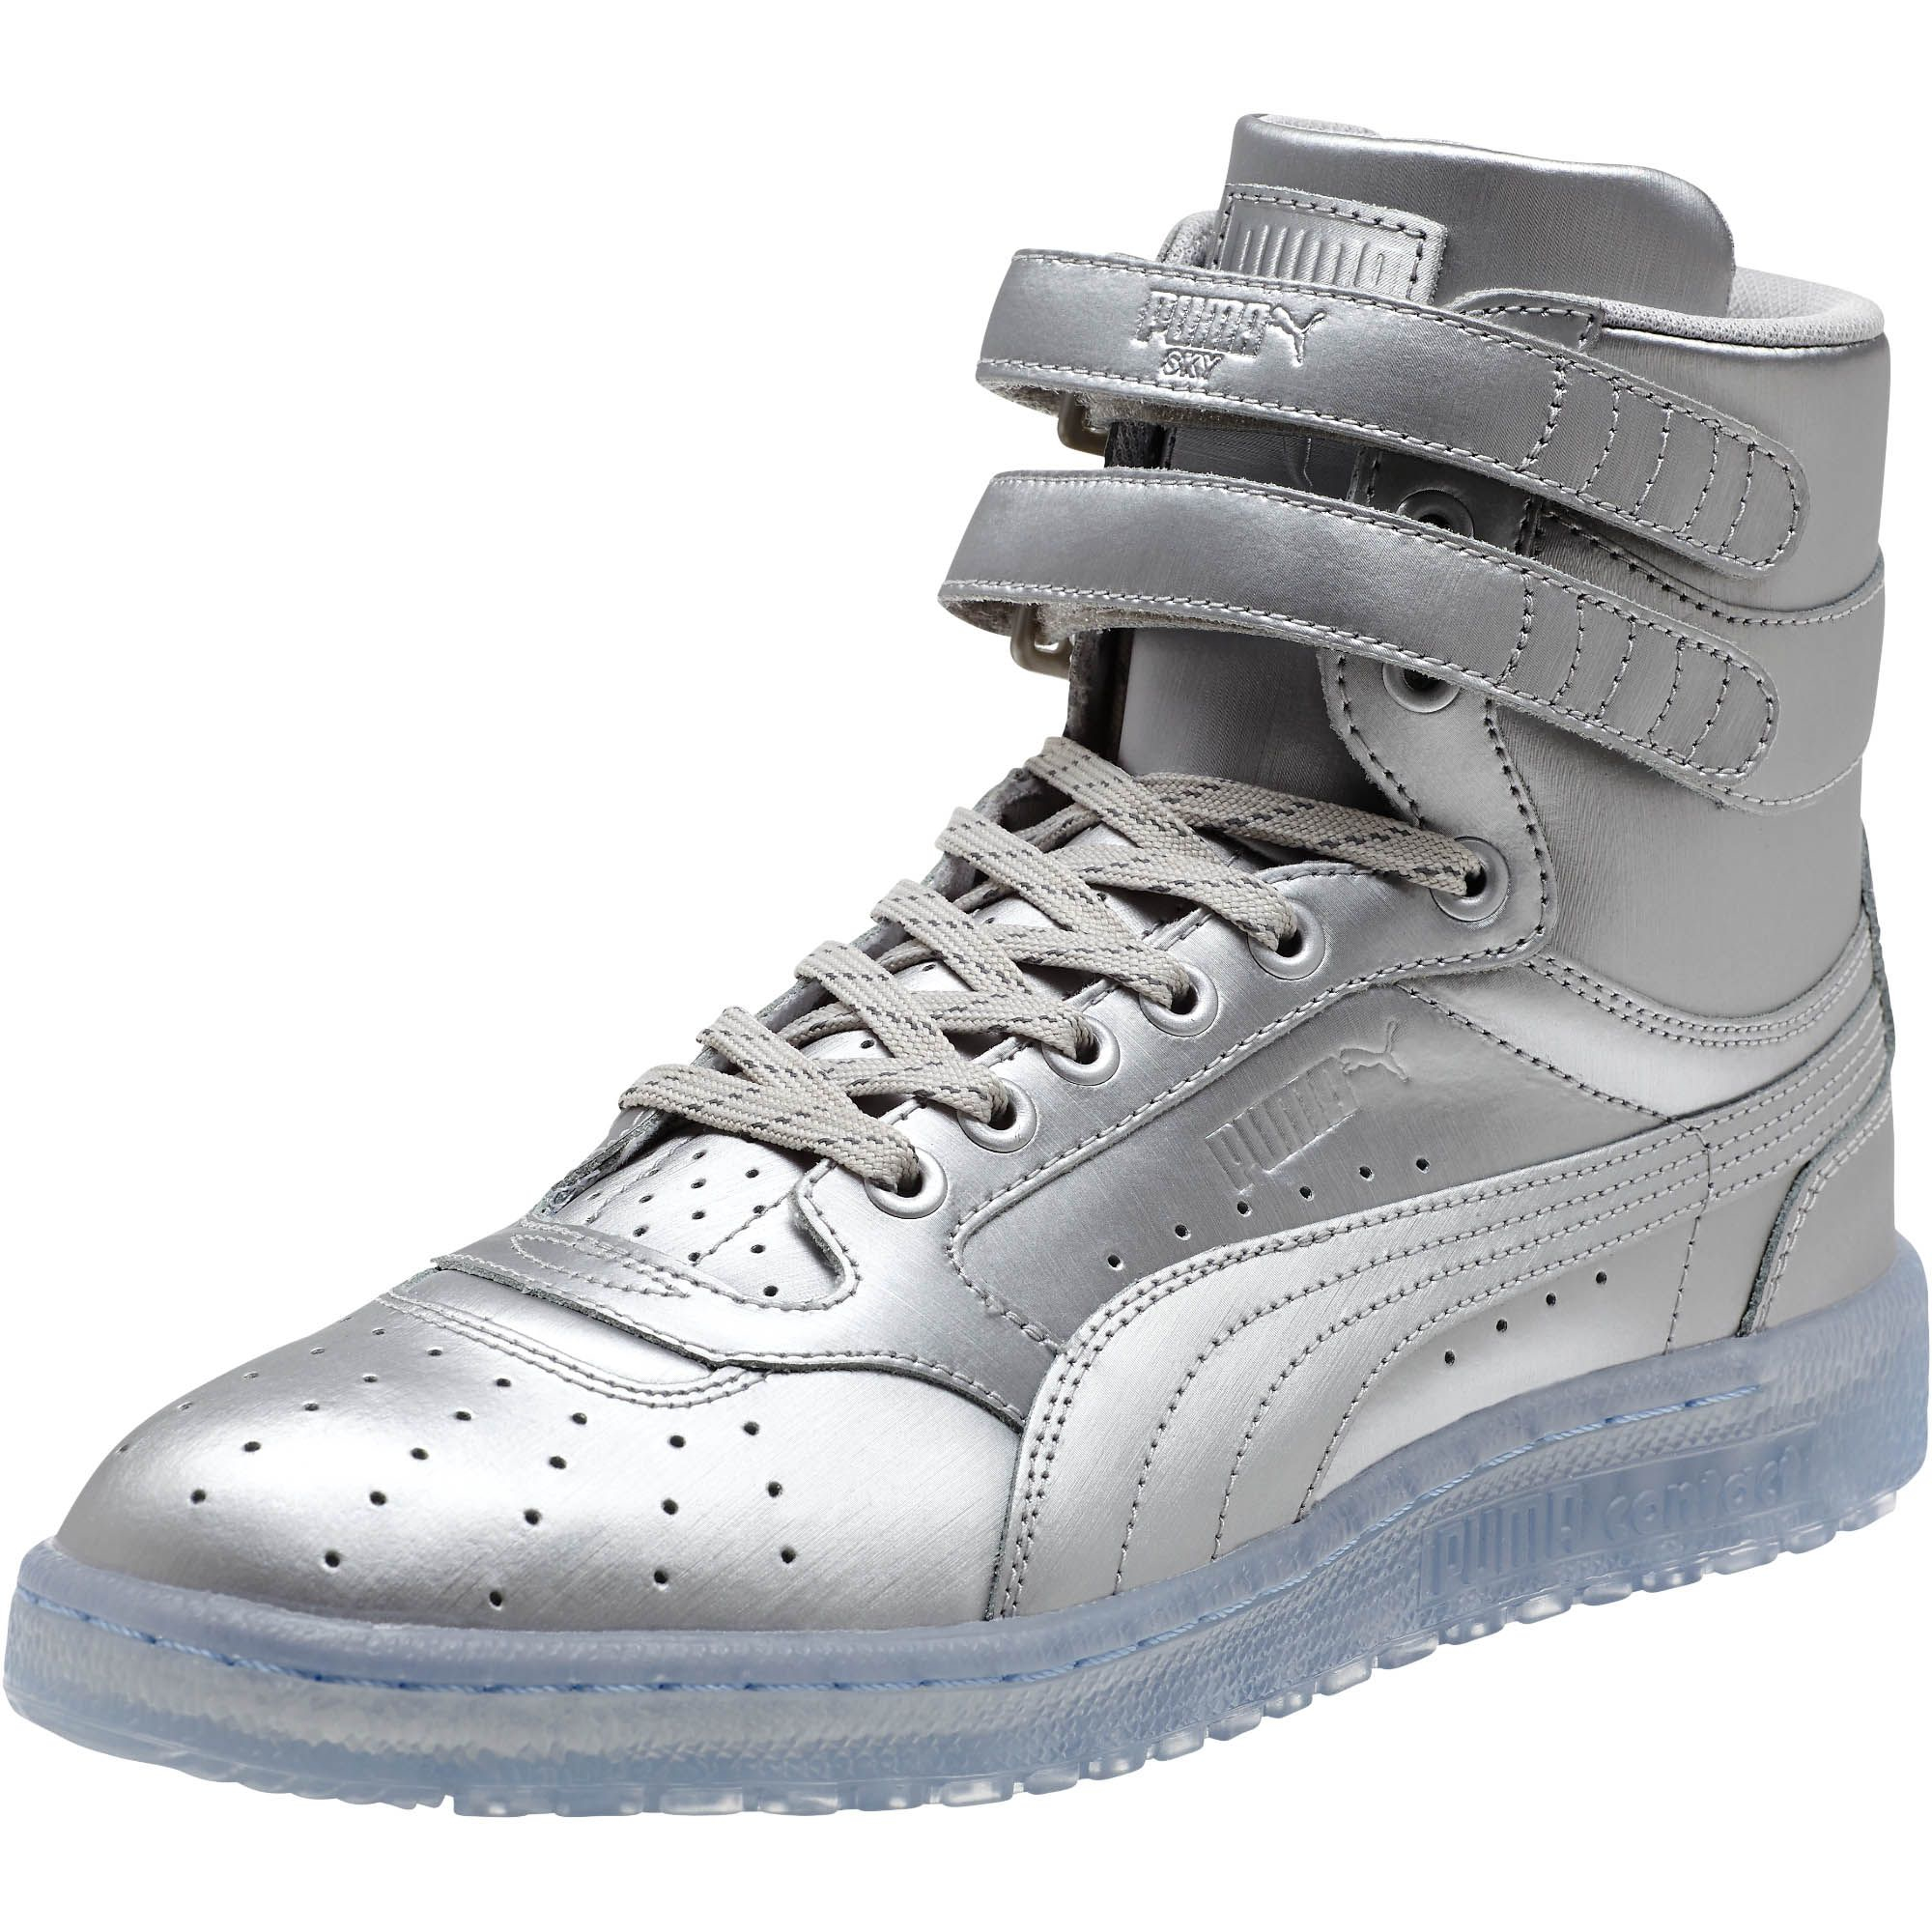 8aa5318f03d Lyst - PUMA Sky Ii Hi Platinum Men s Sneakers in Metallic for Men